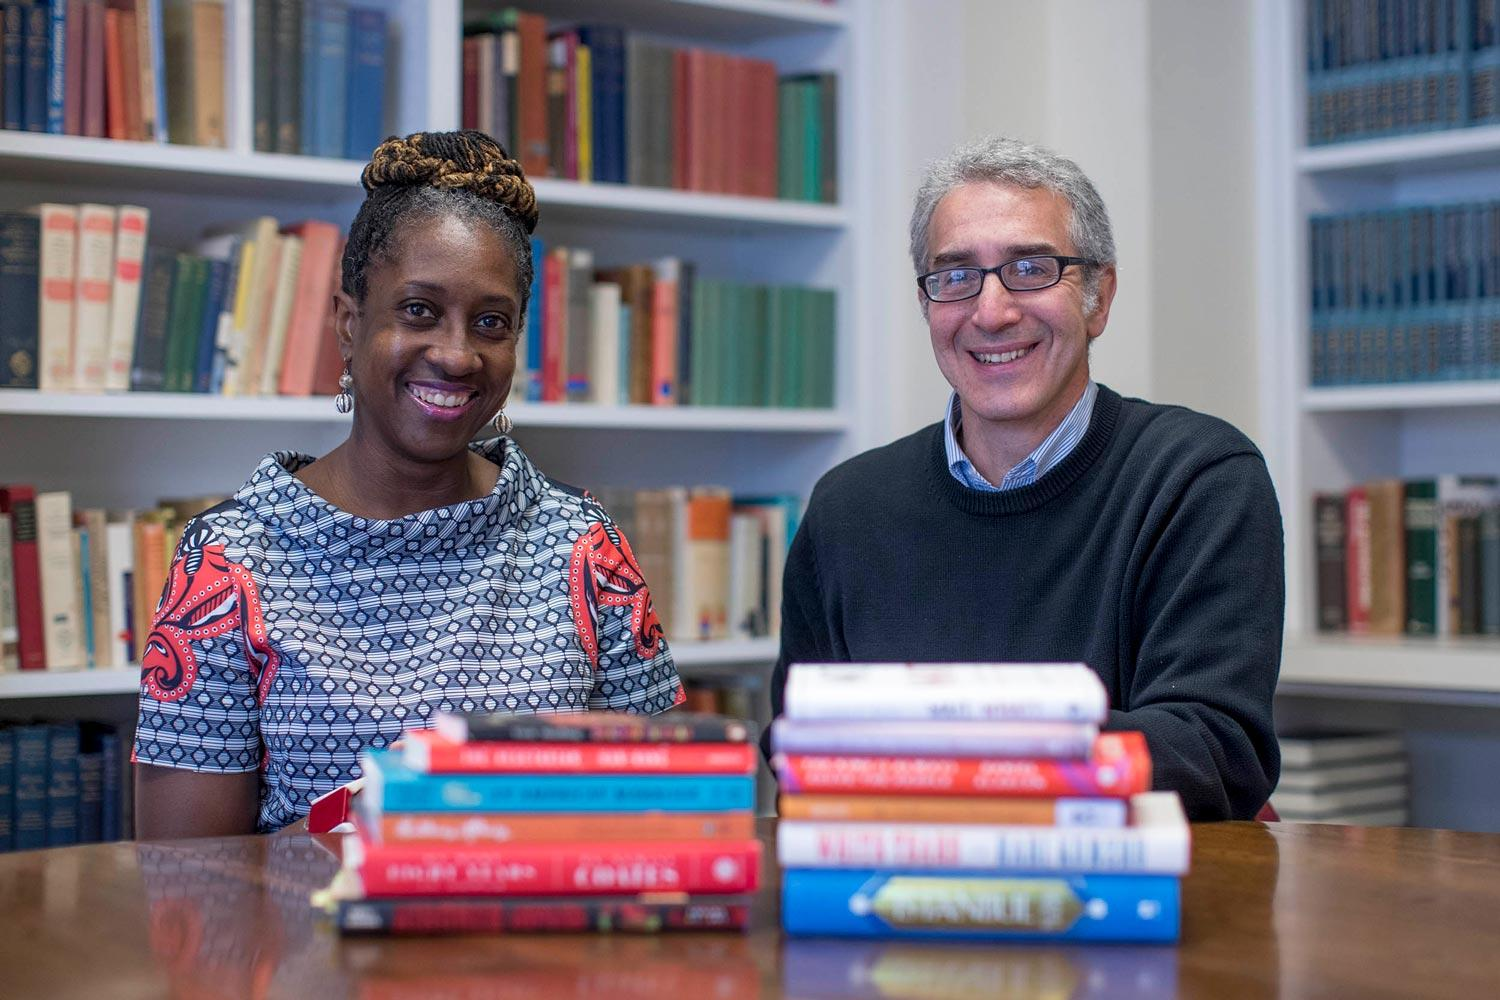 English professor Lisa Woolfork and Roy Cadoff, UVA Bookstore's general books manager, offered their book recommendations Tuesday in a Facebook Live session.